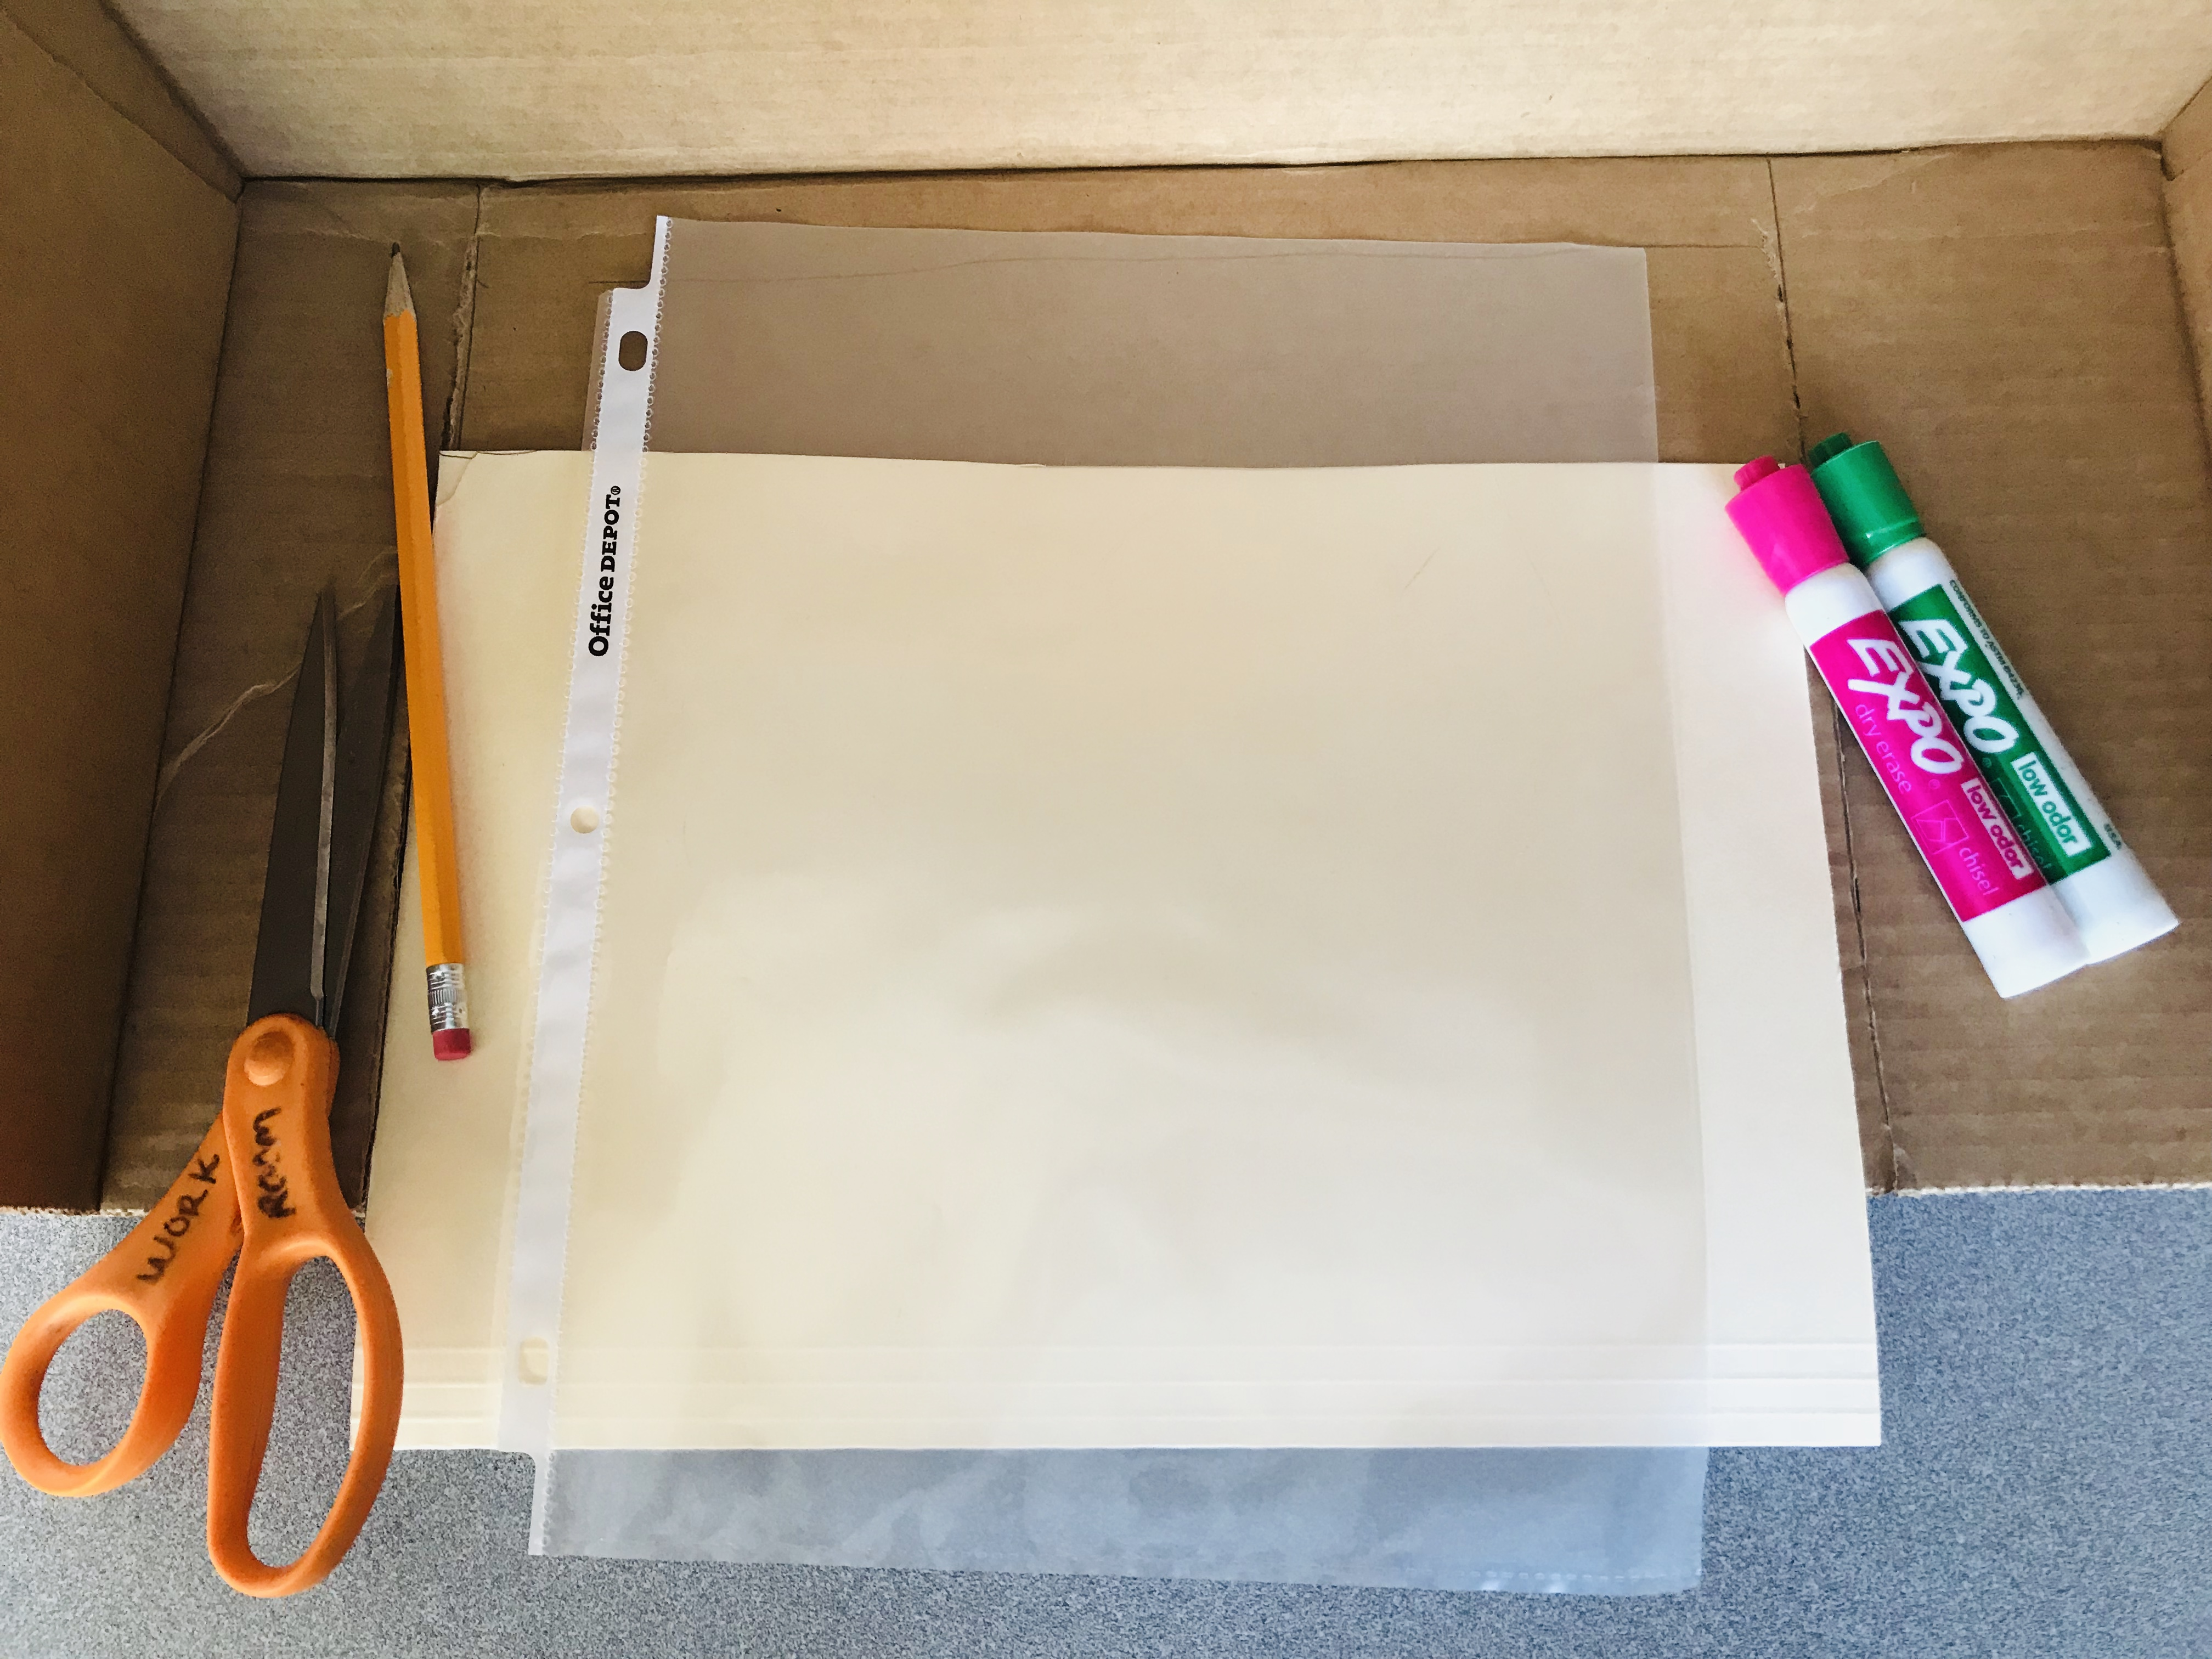 Box with markers, pencil, scissors, folder, and sheet protector